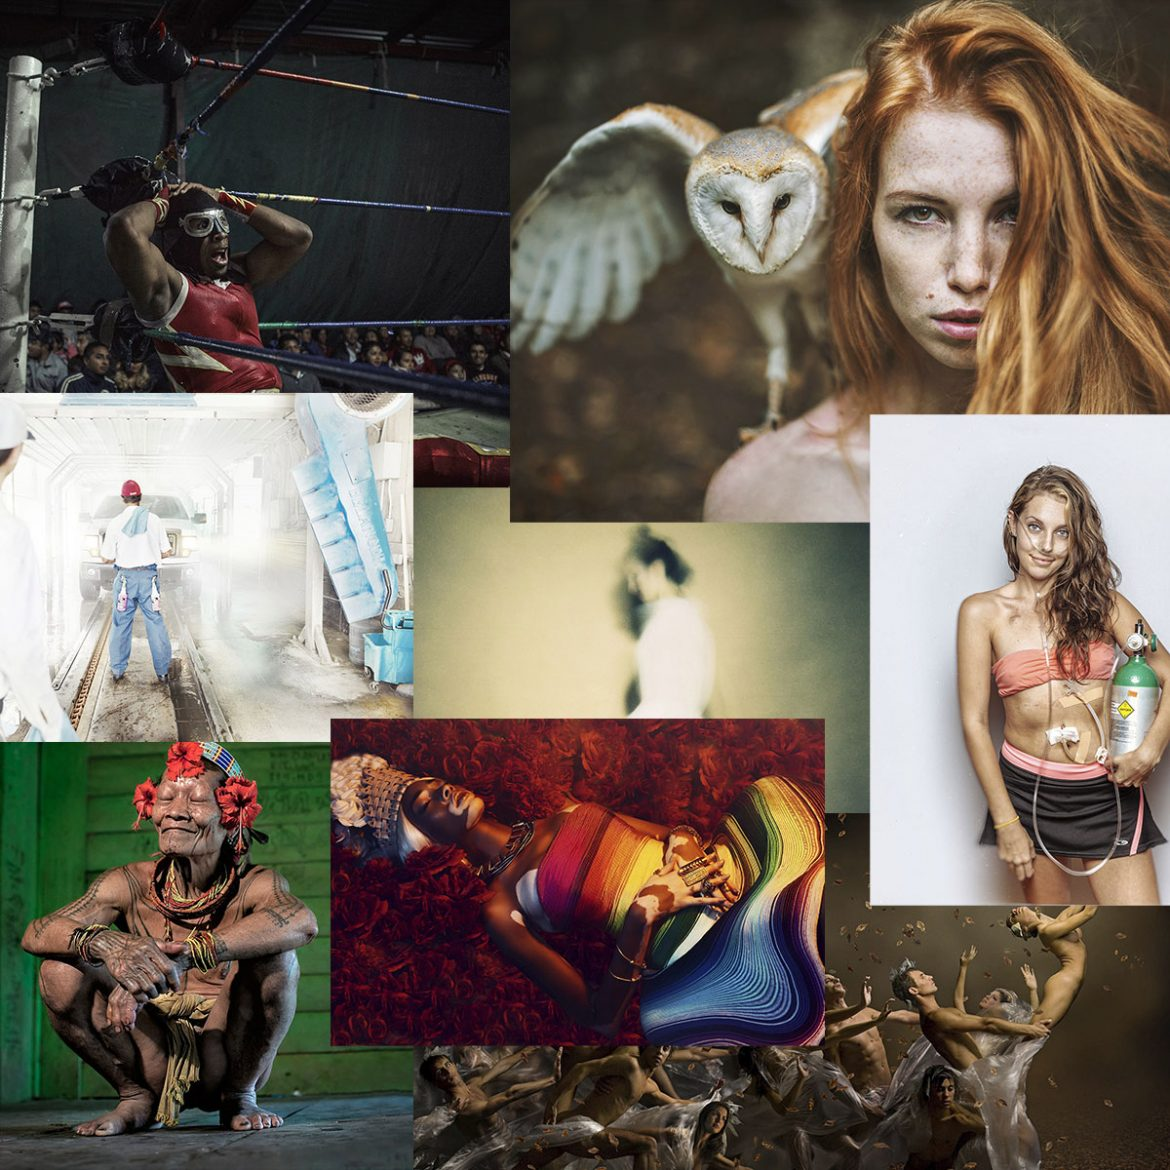 COLOR PHOTOGRAPHY AWARDS 2017 | WINNERS AND FINALISTS